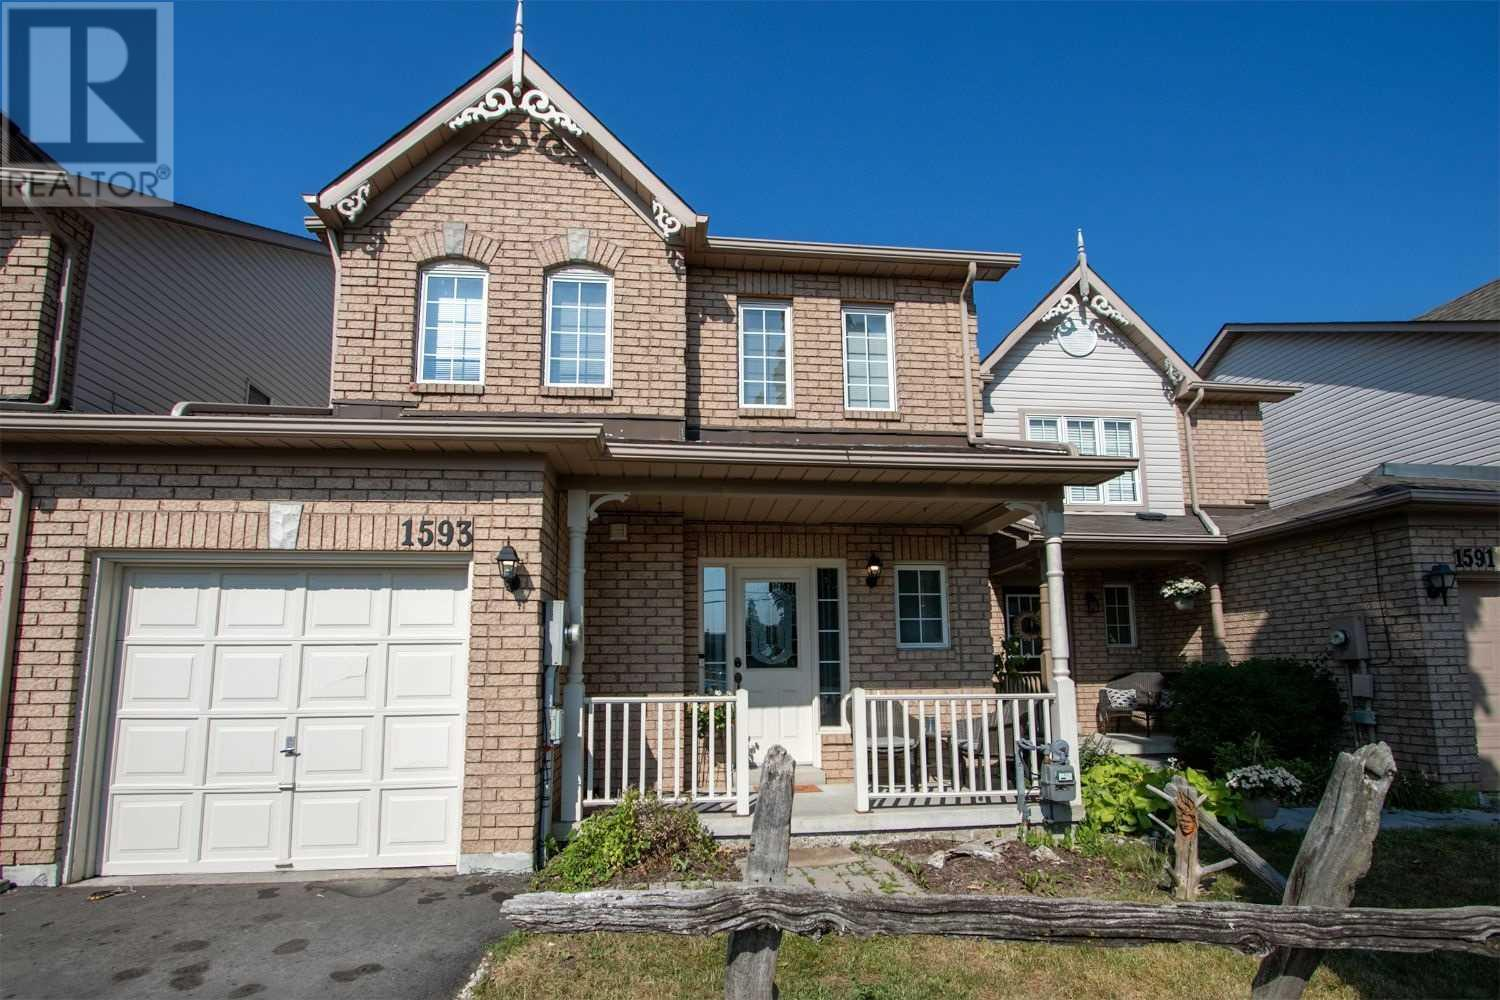 1593 Woodgate Tr, Oshawa, Ontario  L1G 8C8 - Photo 1 - E4828118